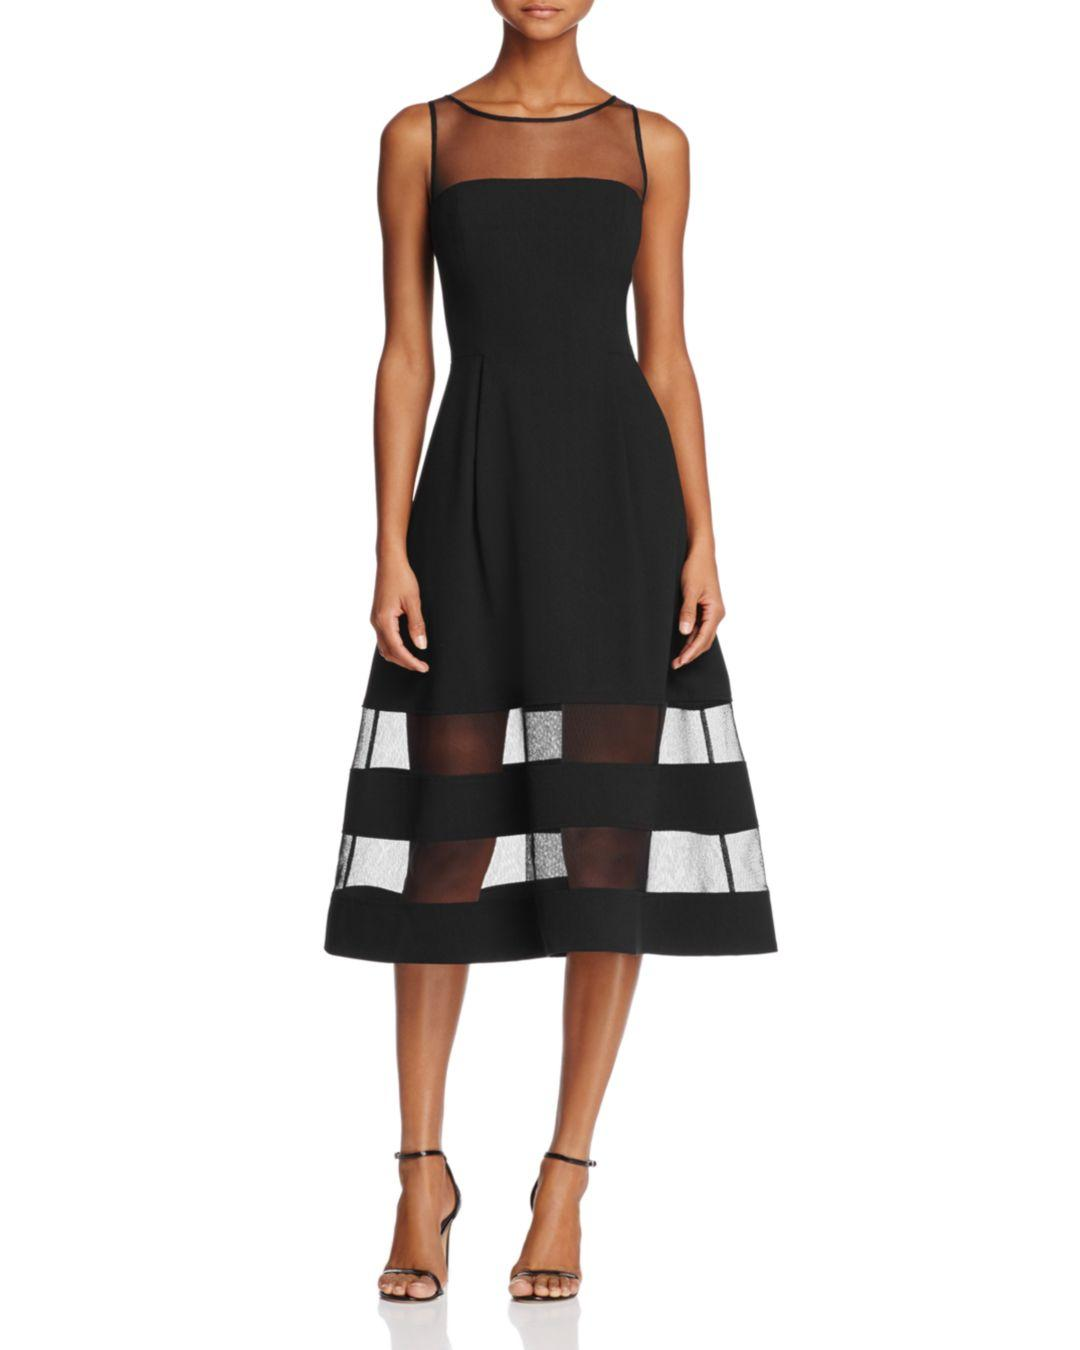 7d0da173283 Aidan By Aidan Mattox Illusion Fit - And - Flare Dress in Black - Lyst